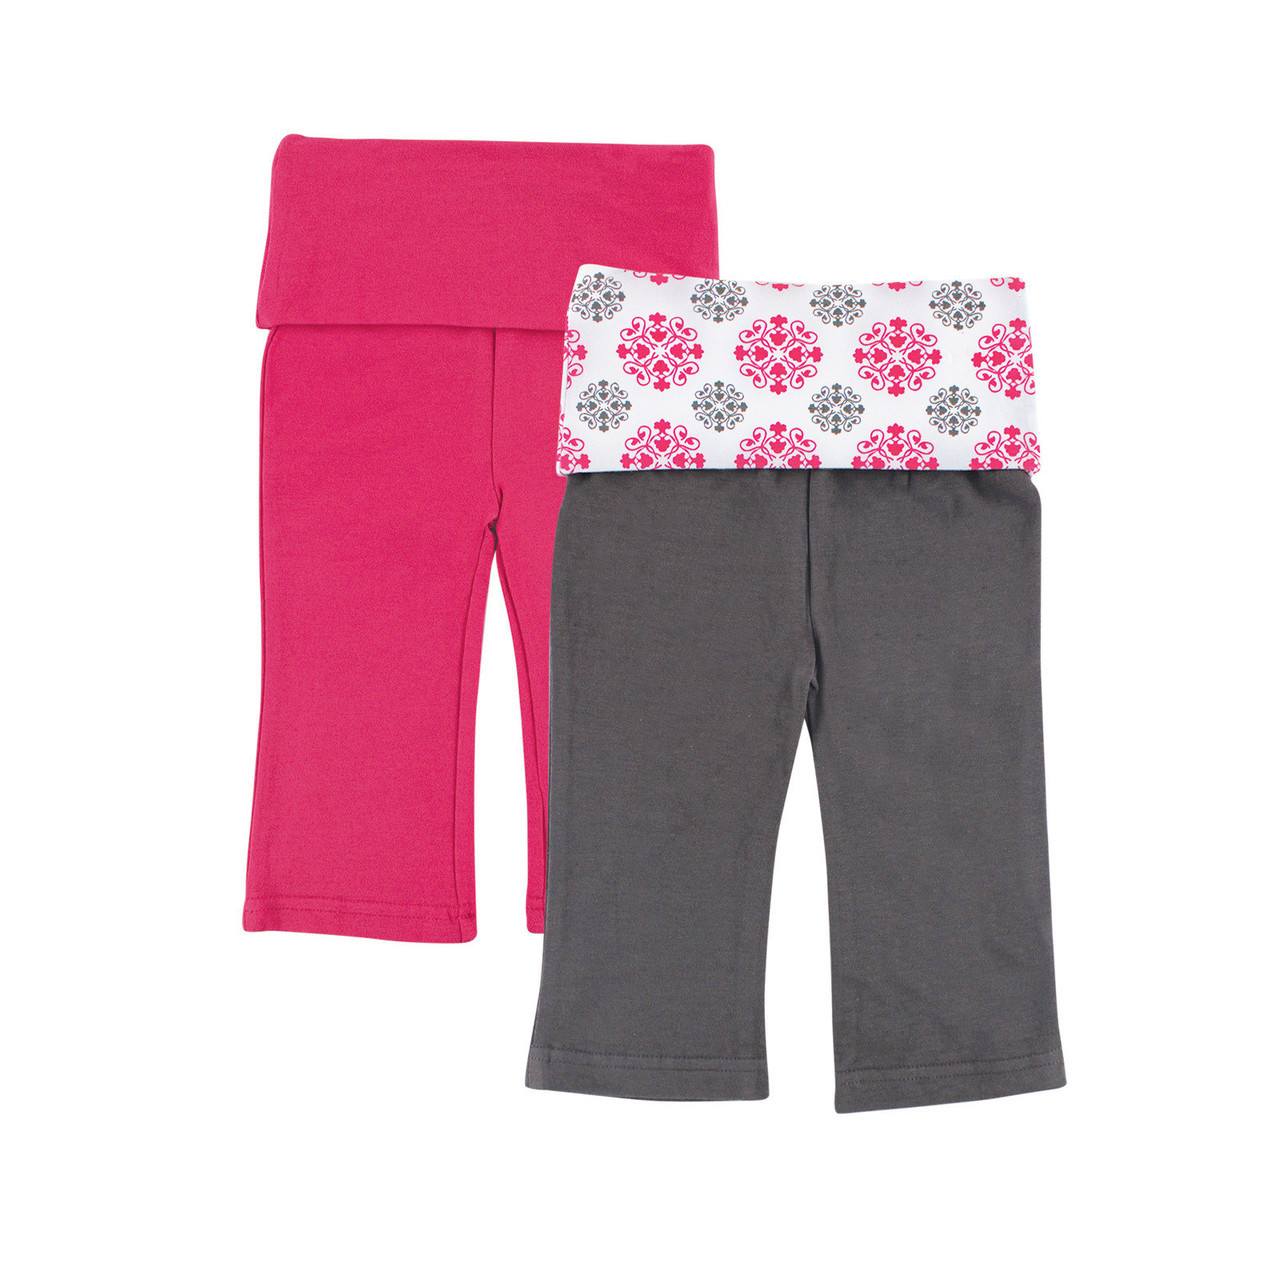 Yoga Sprout Yoga Pants 2 Pack Pink Medallion Baby And Toddler Clothes Accessories And Essentials